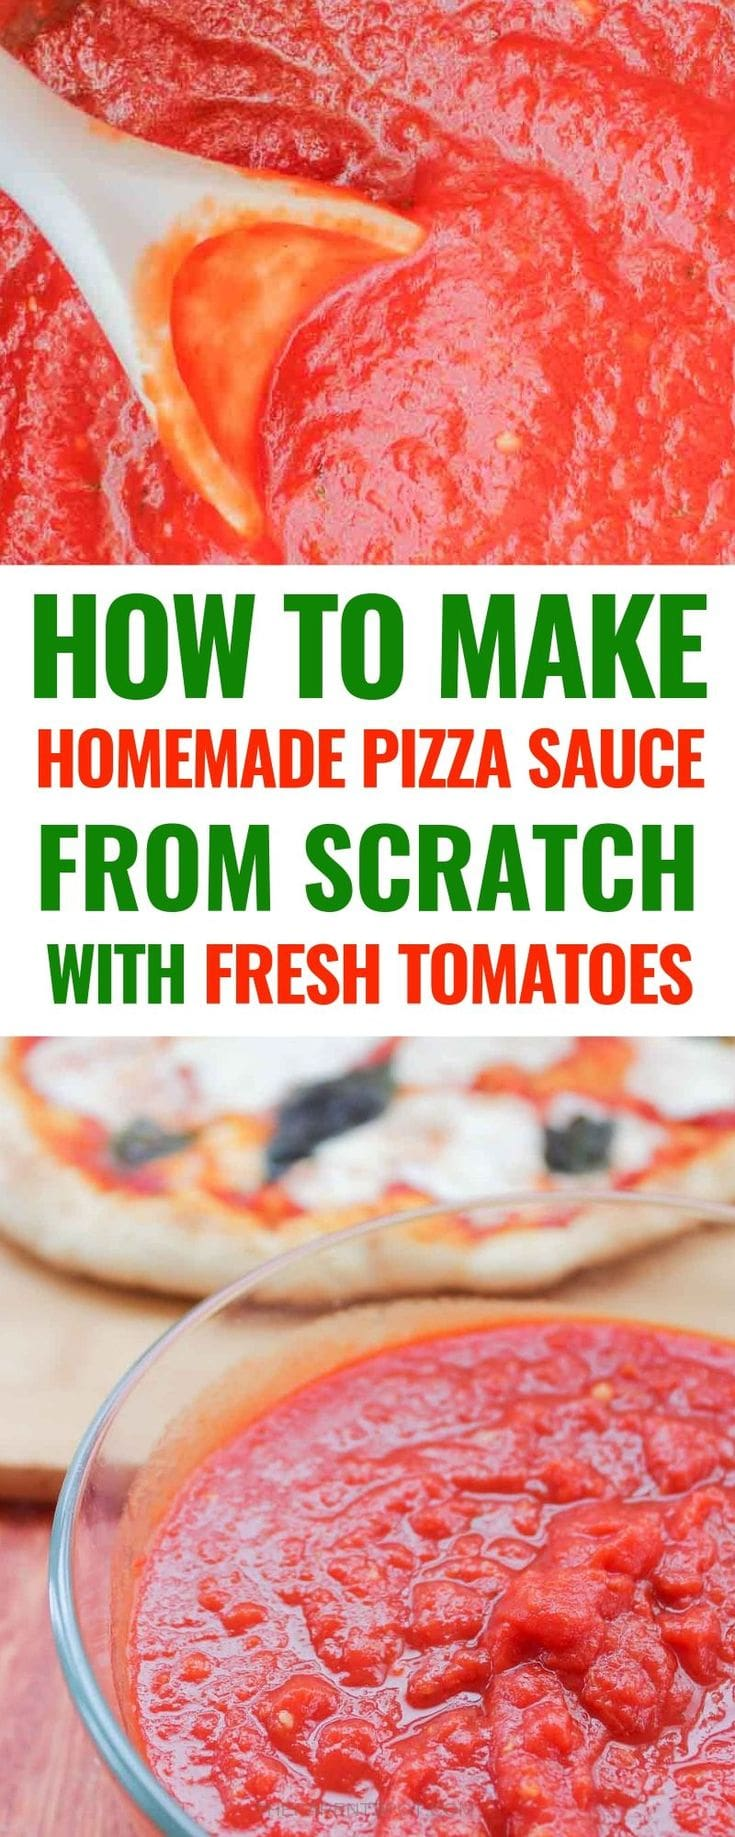 make homemade pizza sauce from scratch with fresh tomatoes